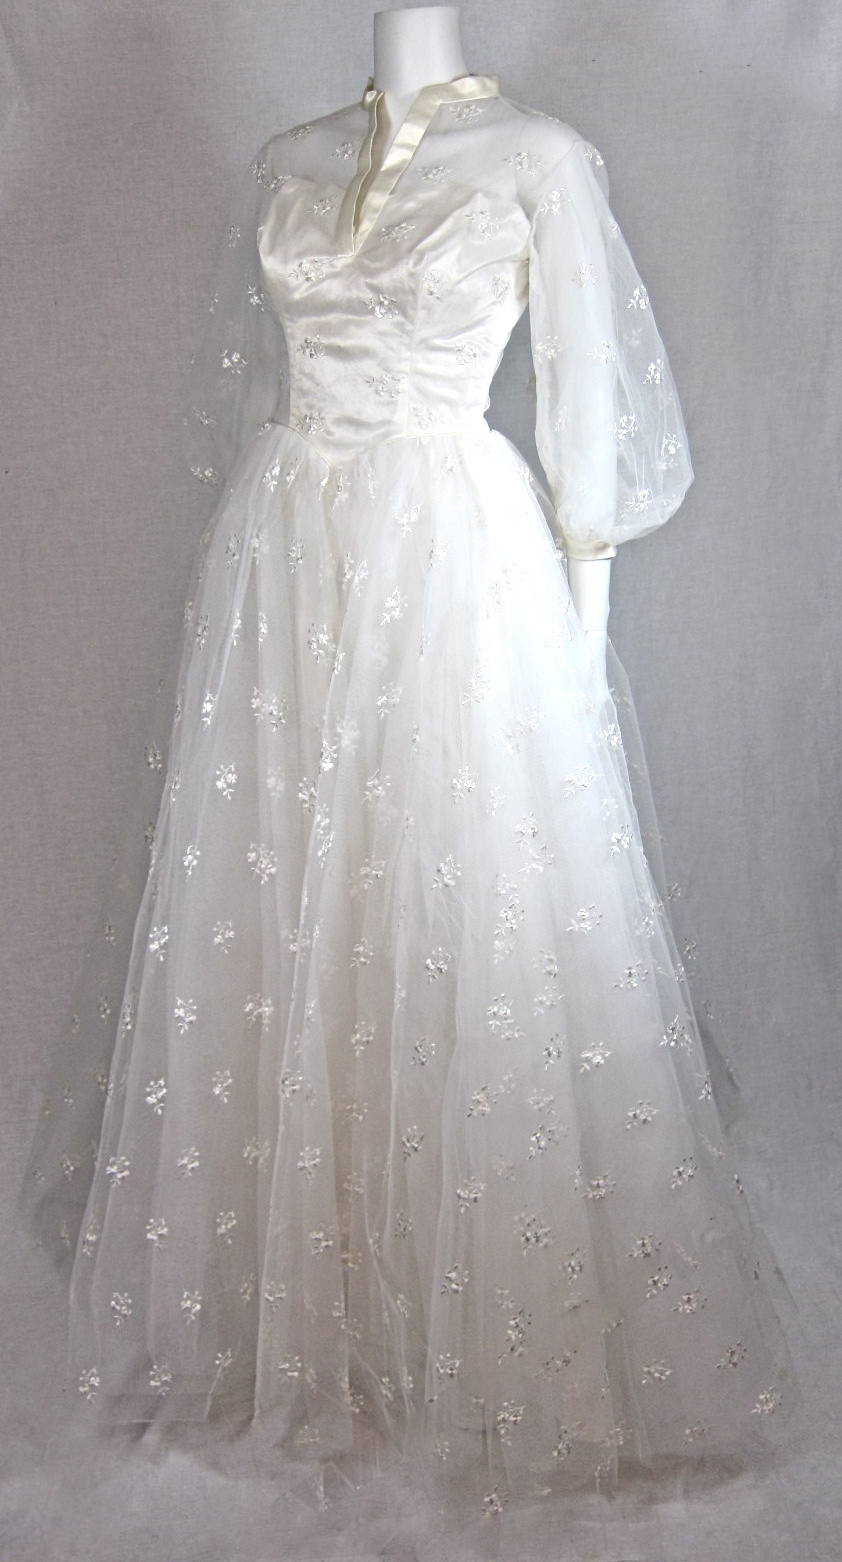 1950s style wedding dresses for sale flower girl dresses